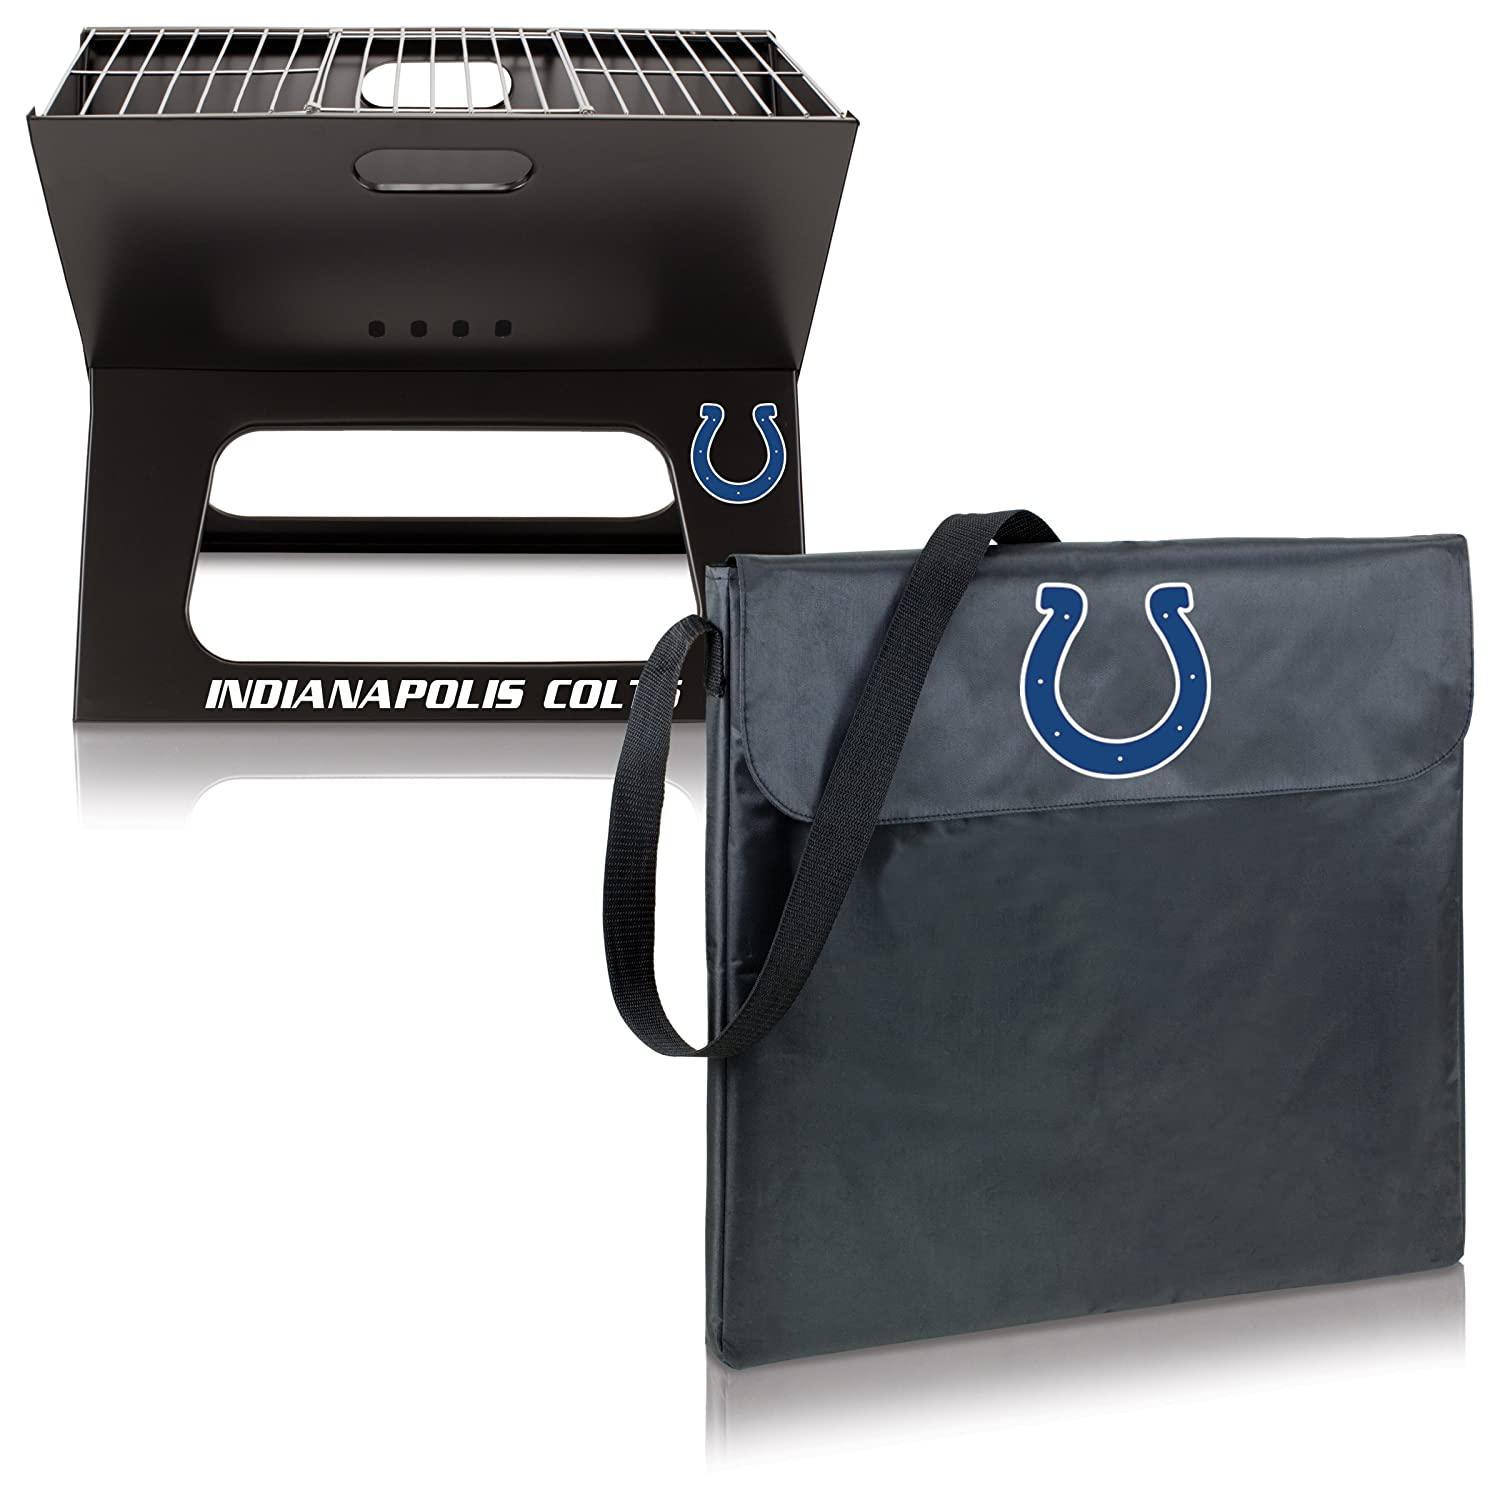 NFL Indianapolis Colts Portable Collapsible Charcoal X-Grill